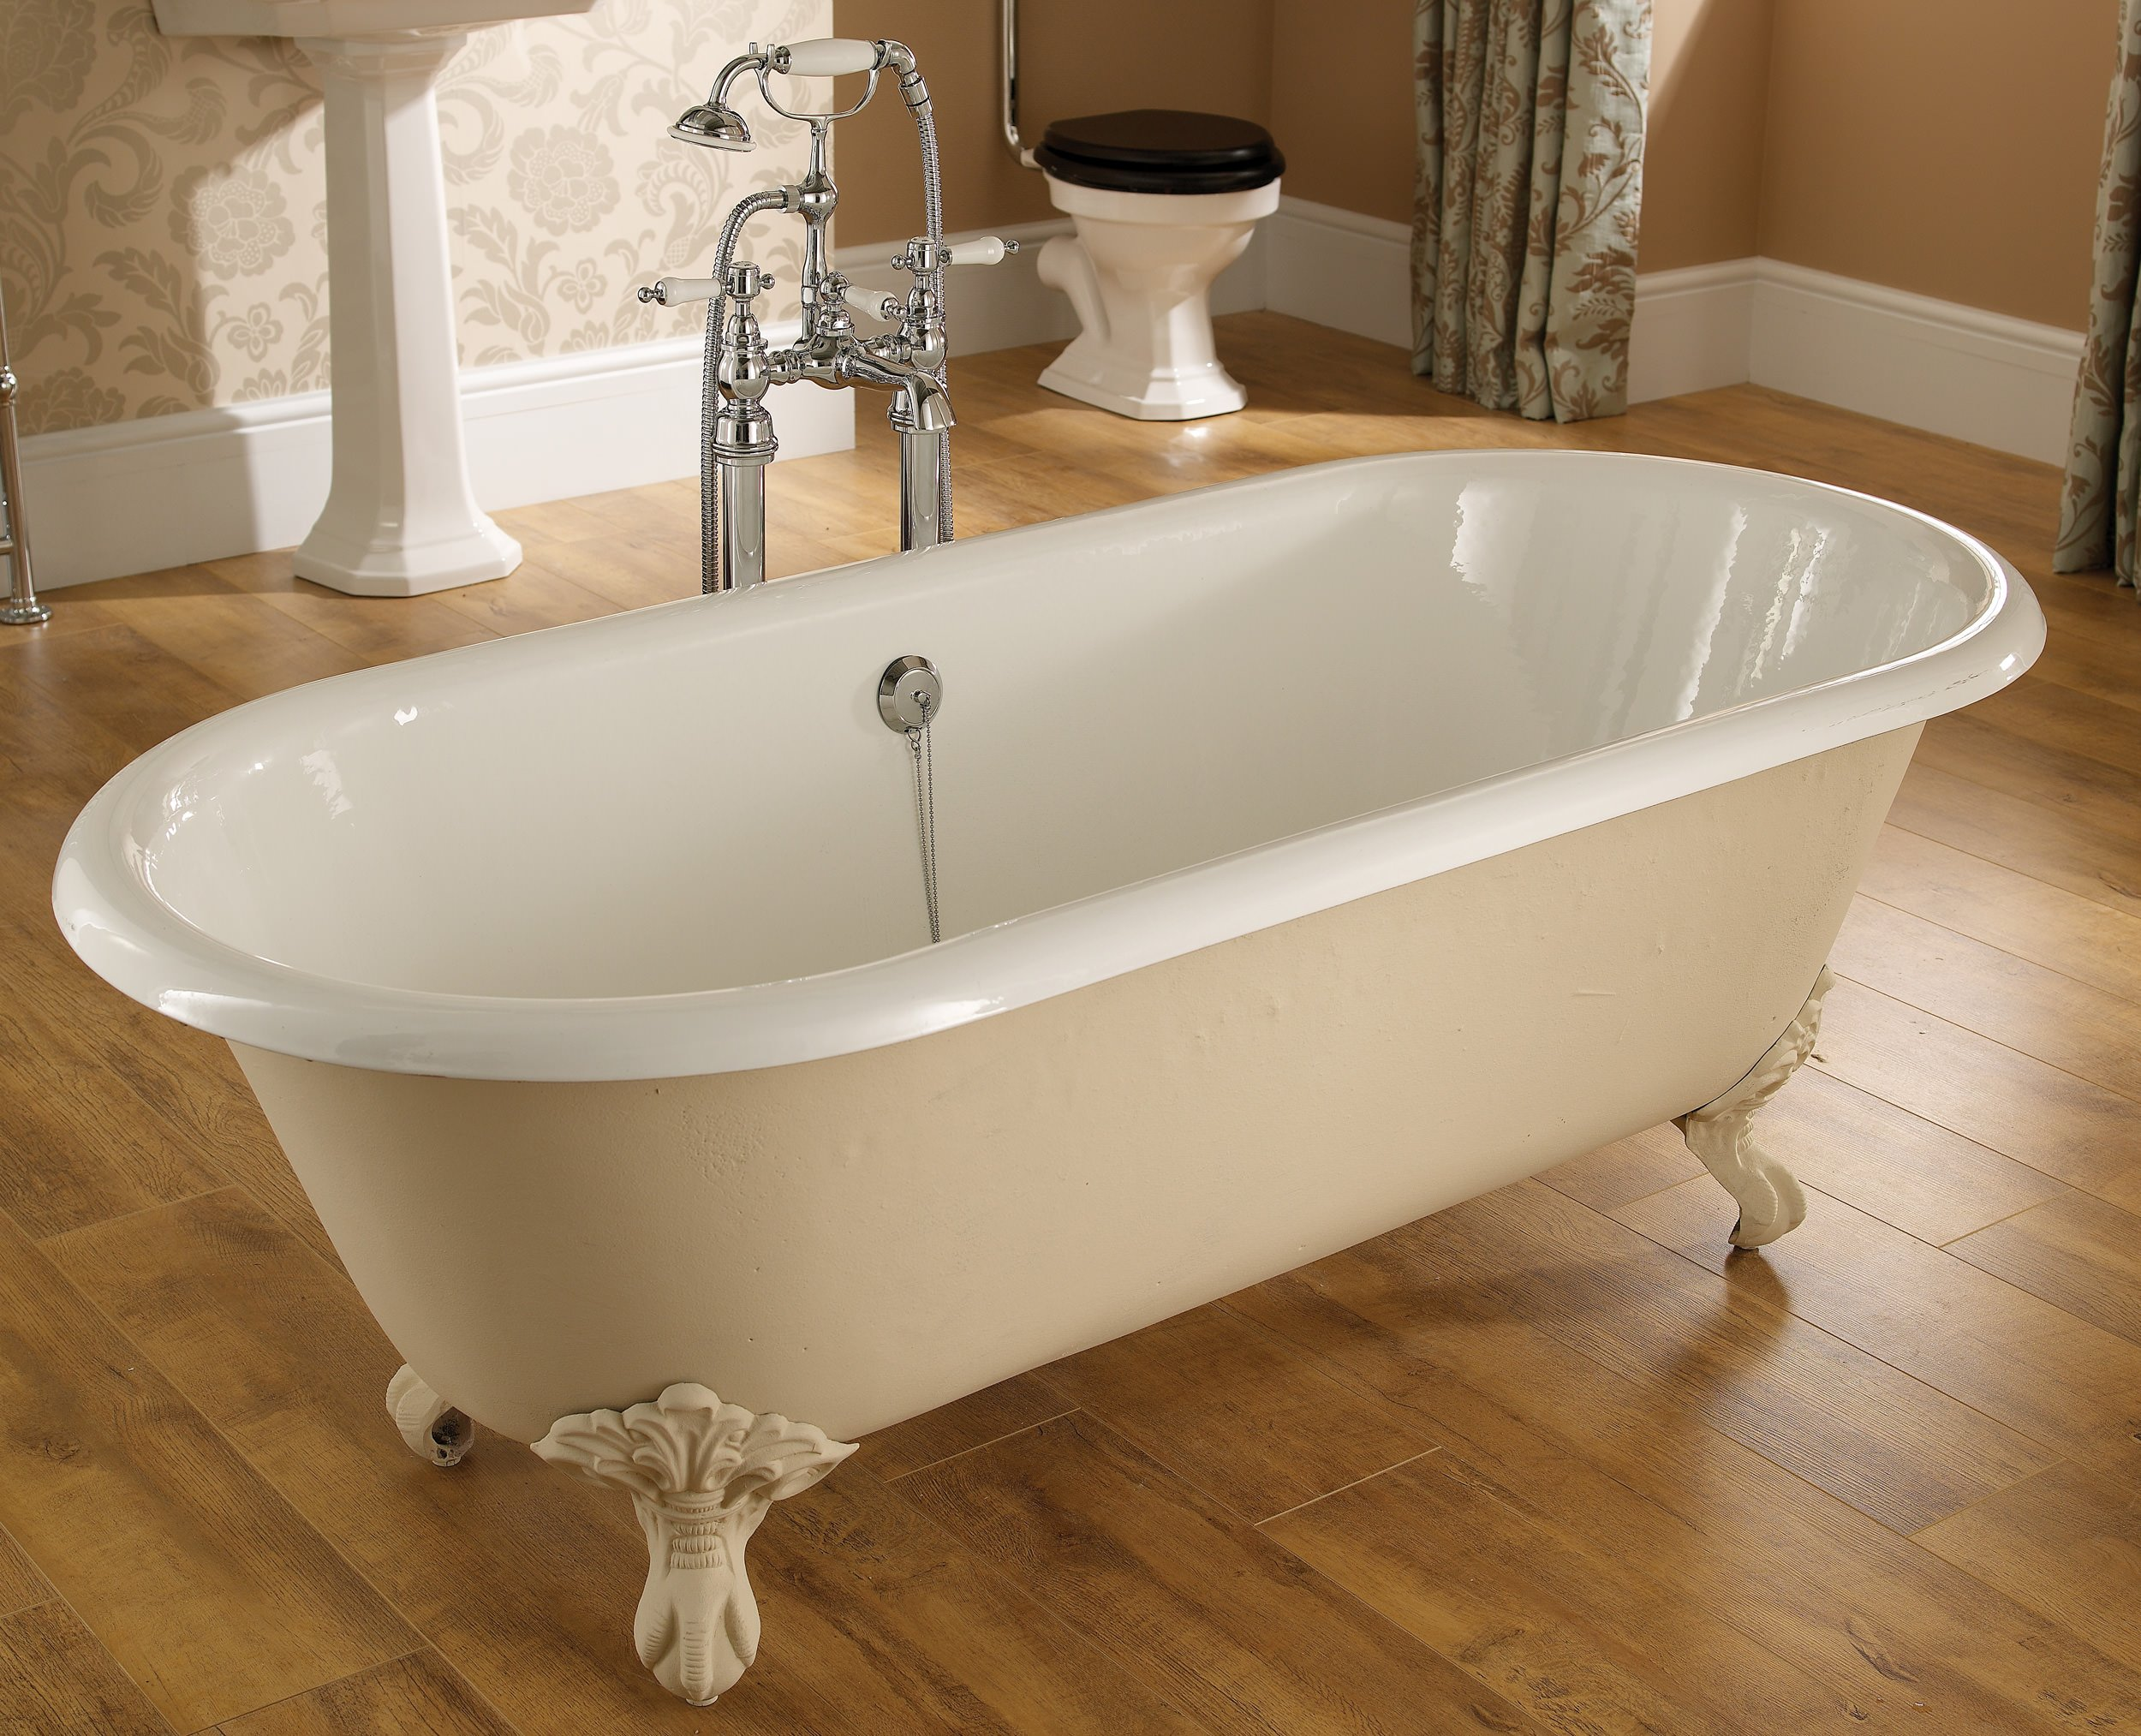 Magnificent Acrylic Roll Top Bath Pictures Inspiration - The Best ...